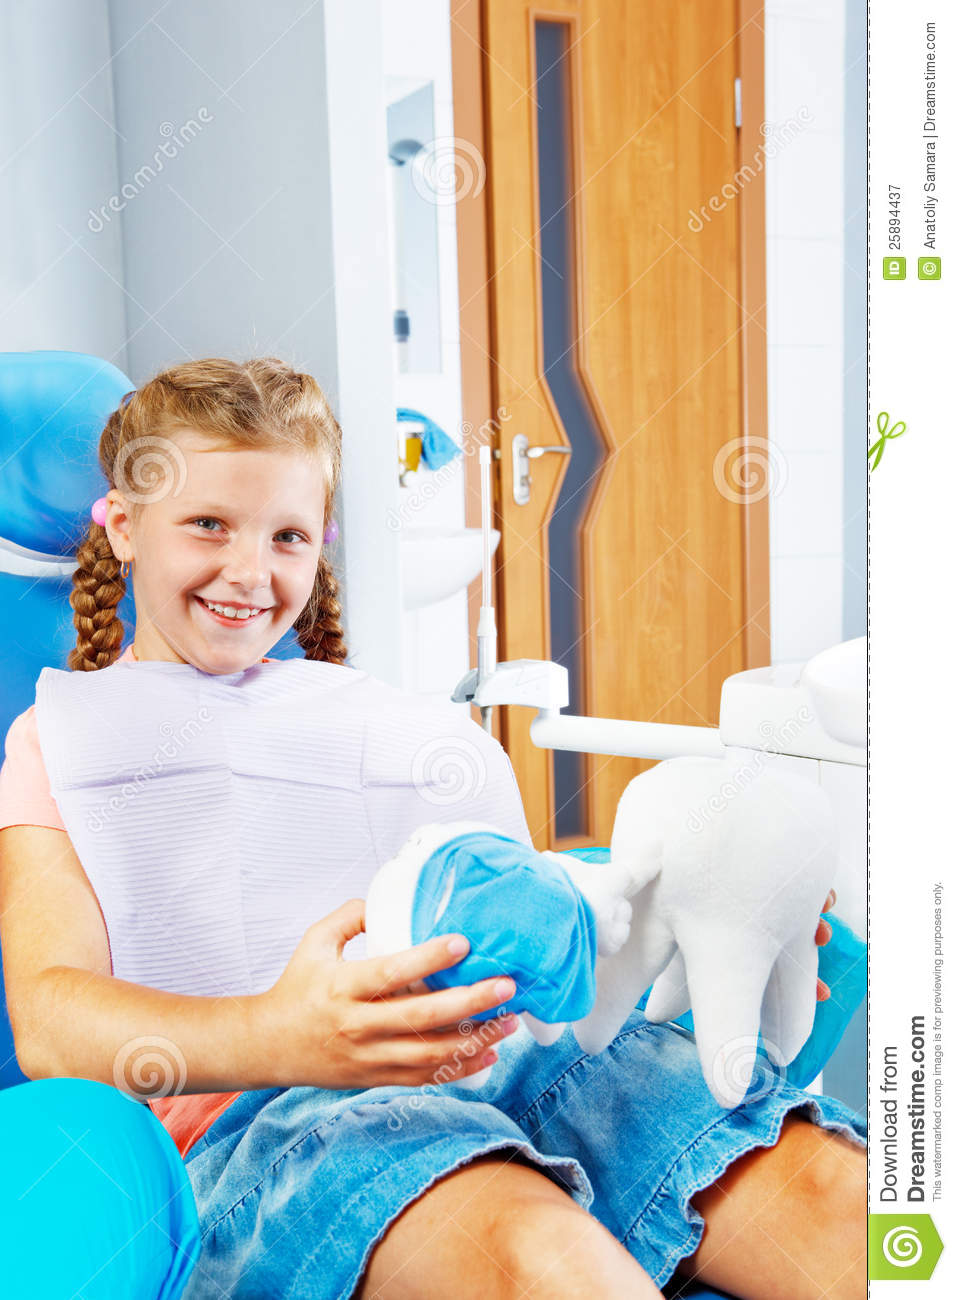 Smiling kid in a dentist chair royalty free stock photography image